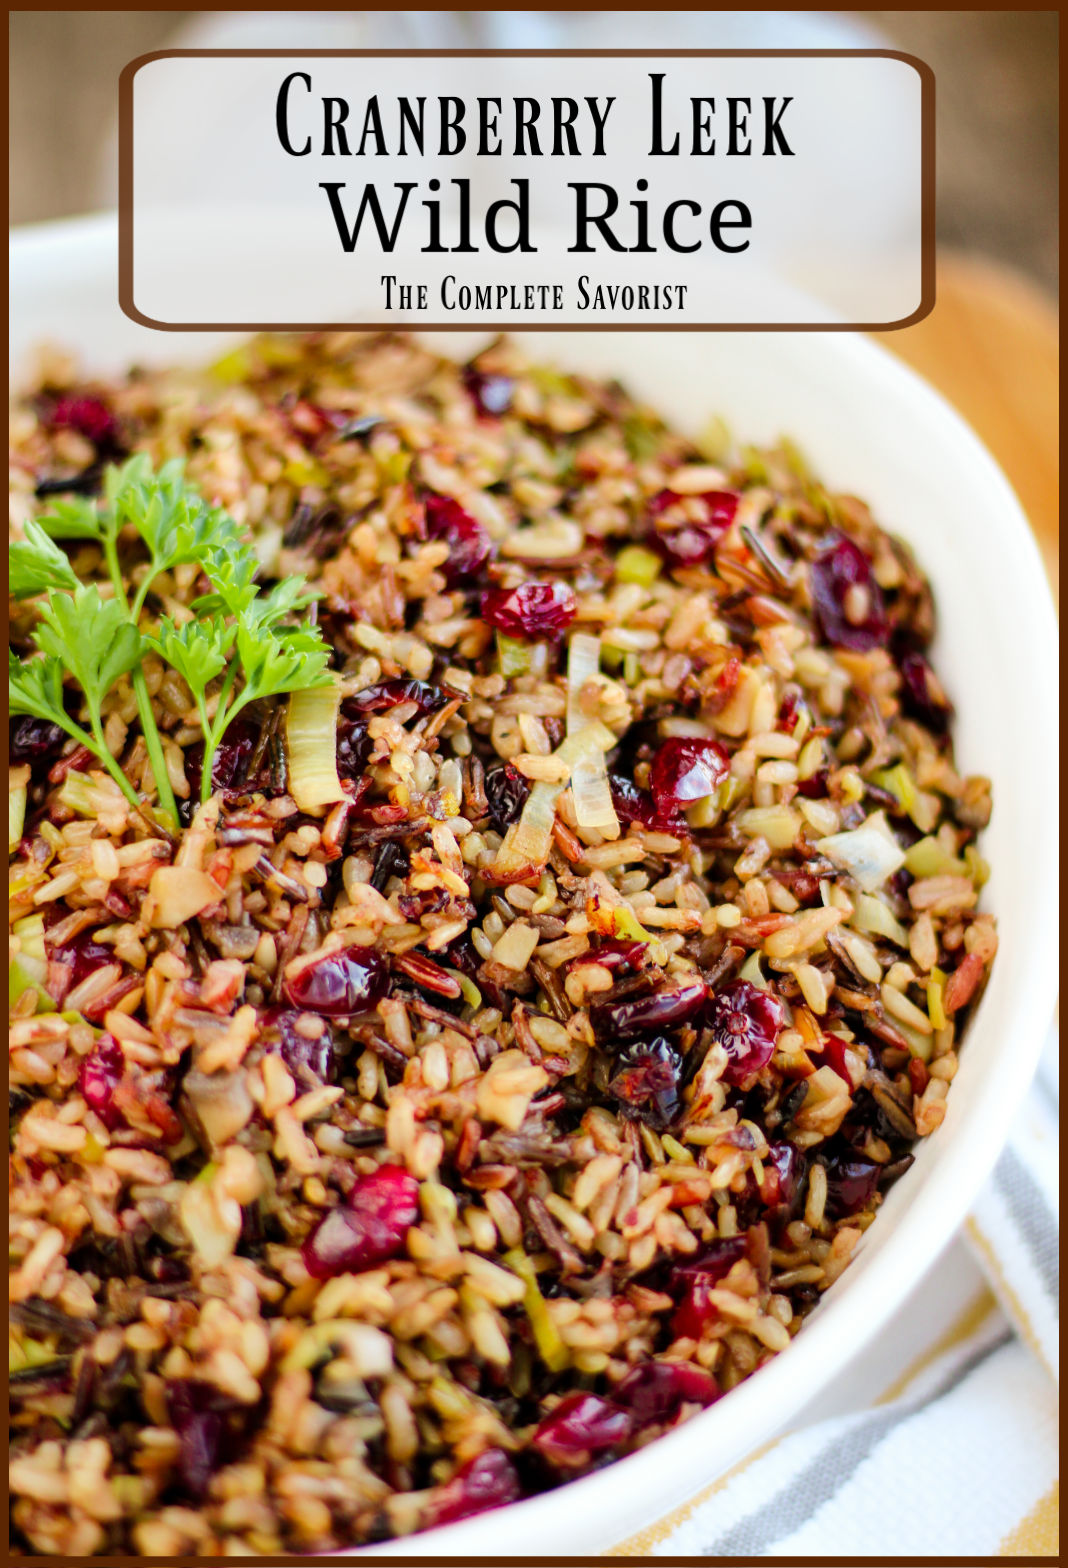 A white serving bowl full of wild rice with cranberries and leeks garnished with a sprig of curly parsley.